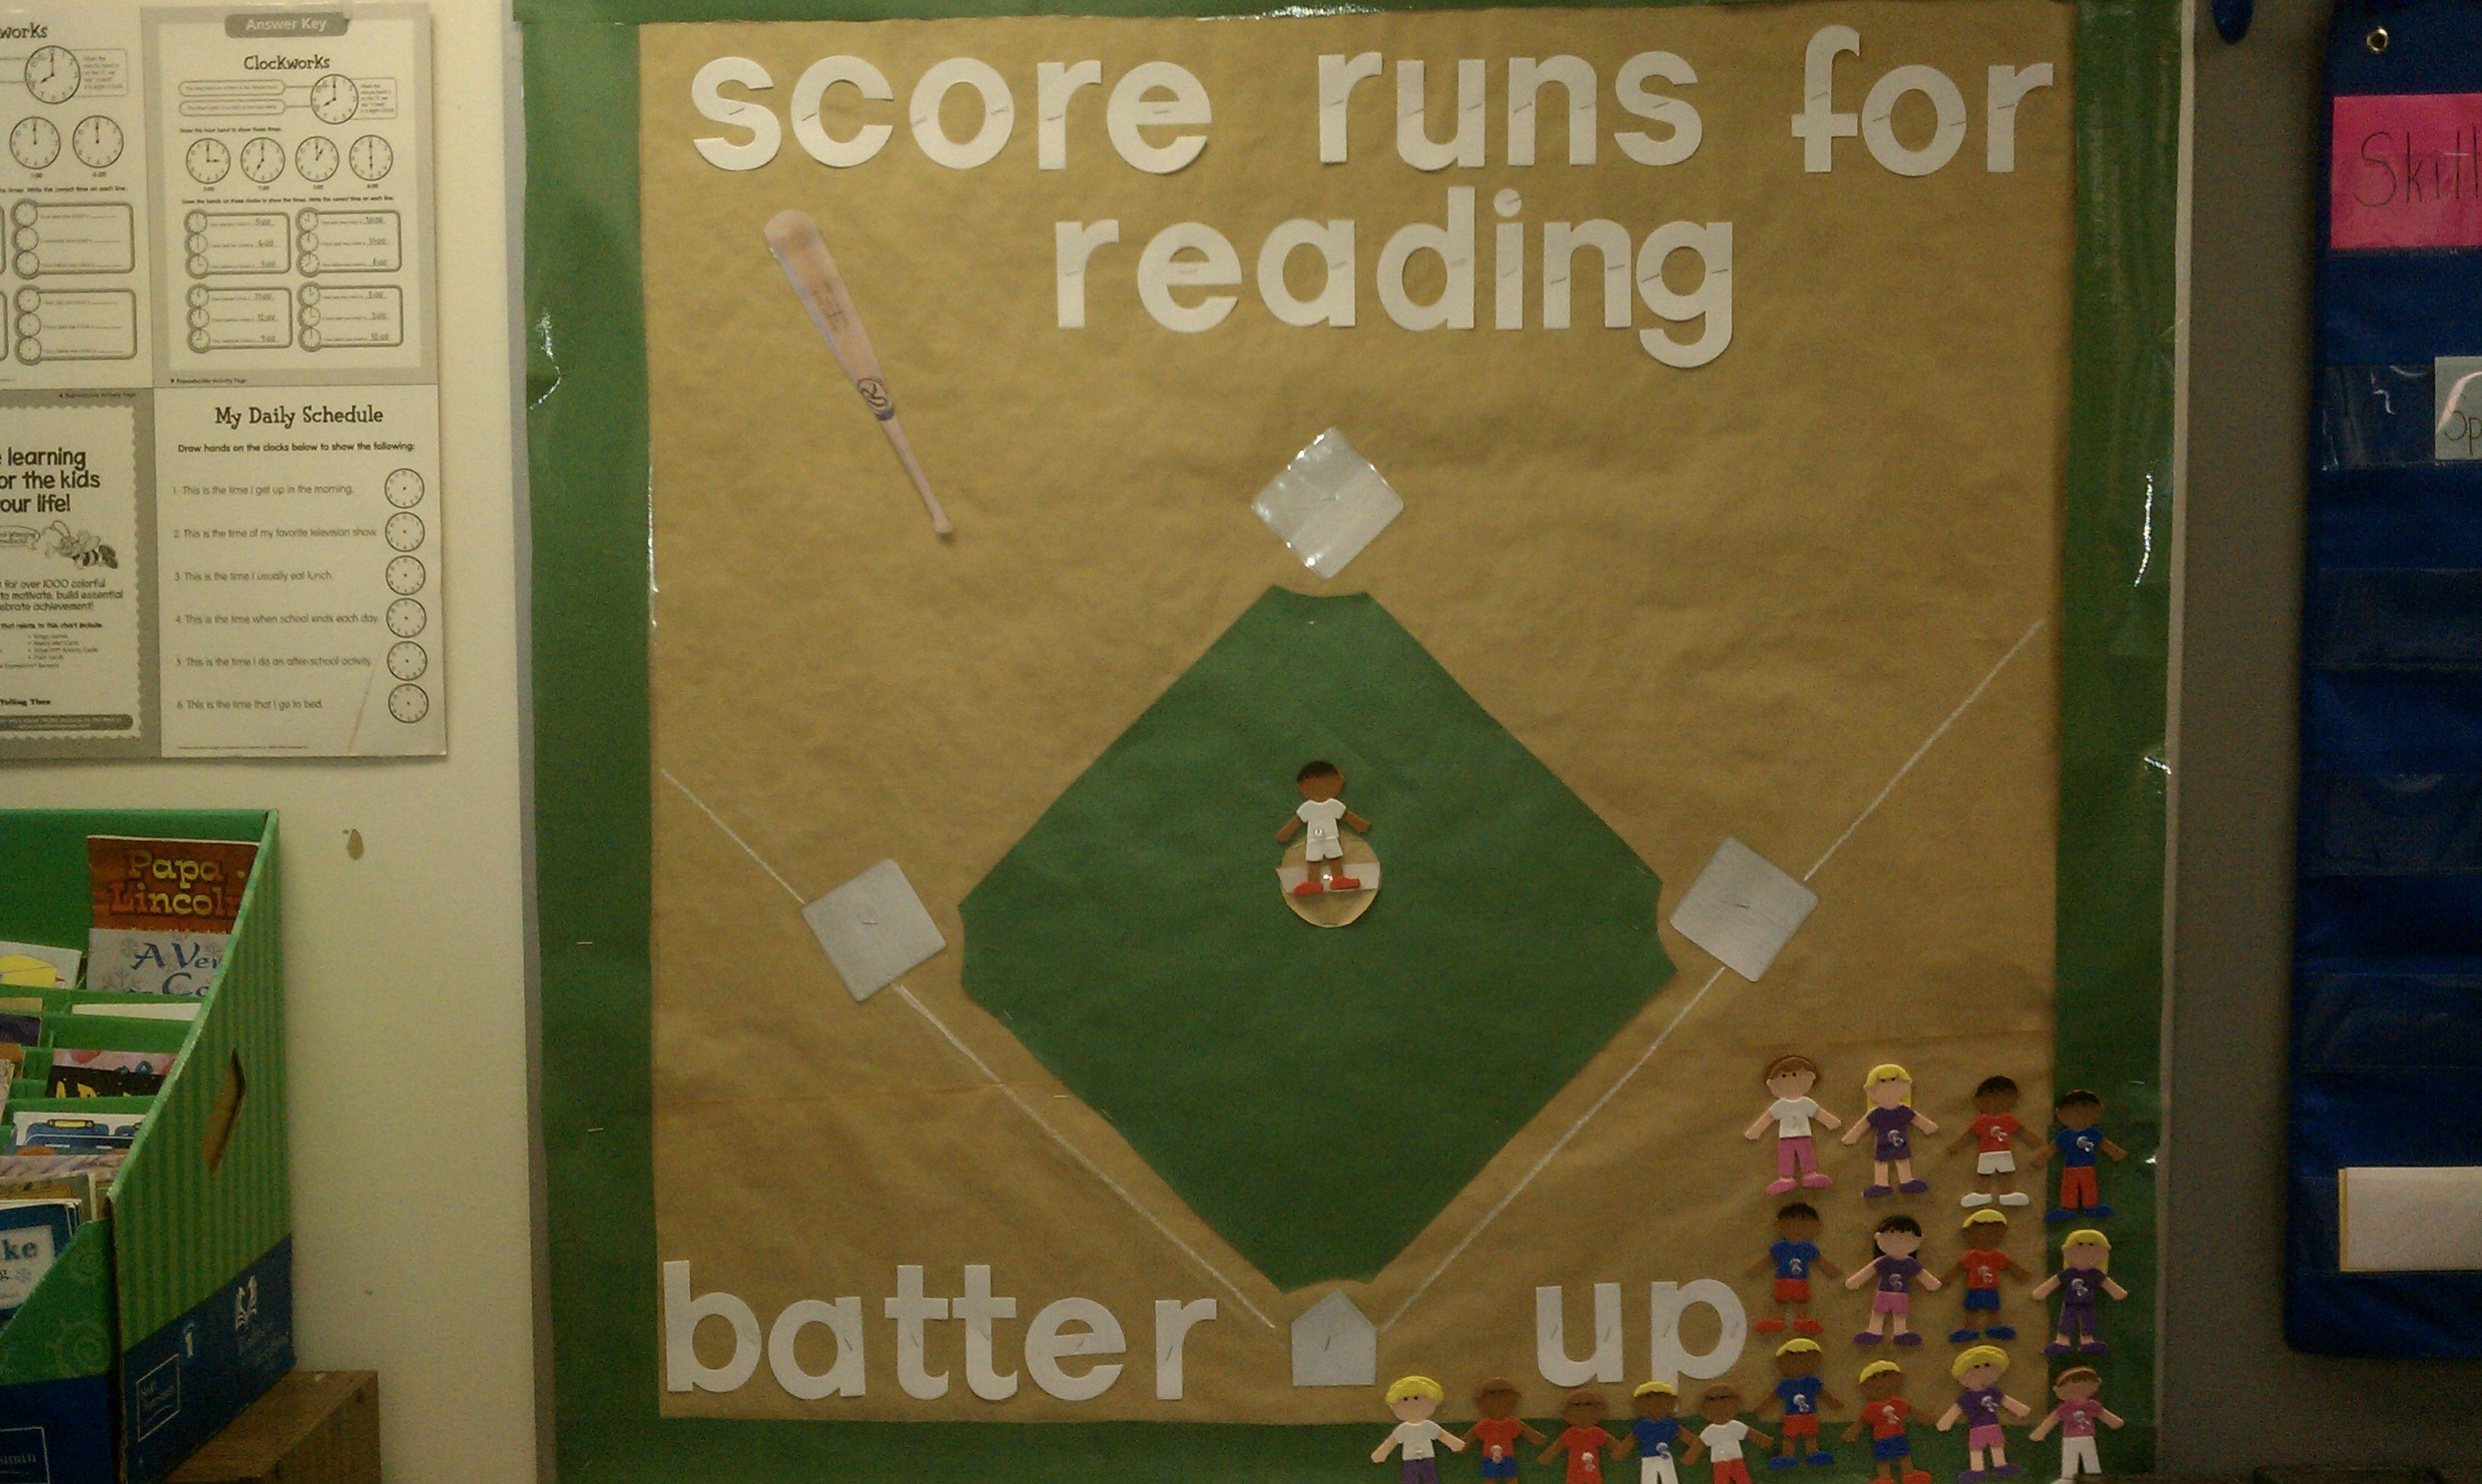 I Created This Board To Practice Pssa Reading Skills And To Strengthen Students Reading Comprehension And W Reading Incentives Student Reading Reading Practice [ 1952 x 3264 Pixel ]